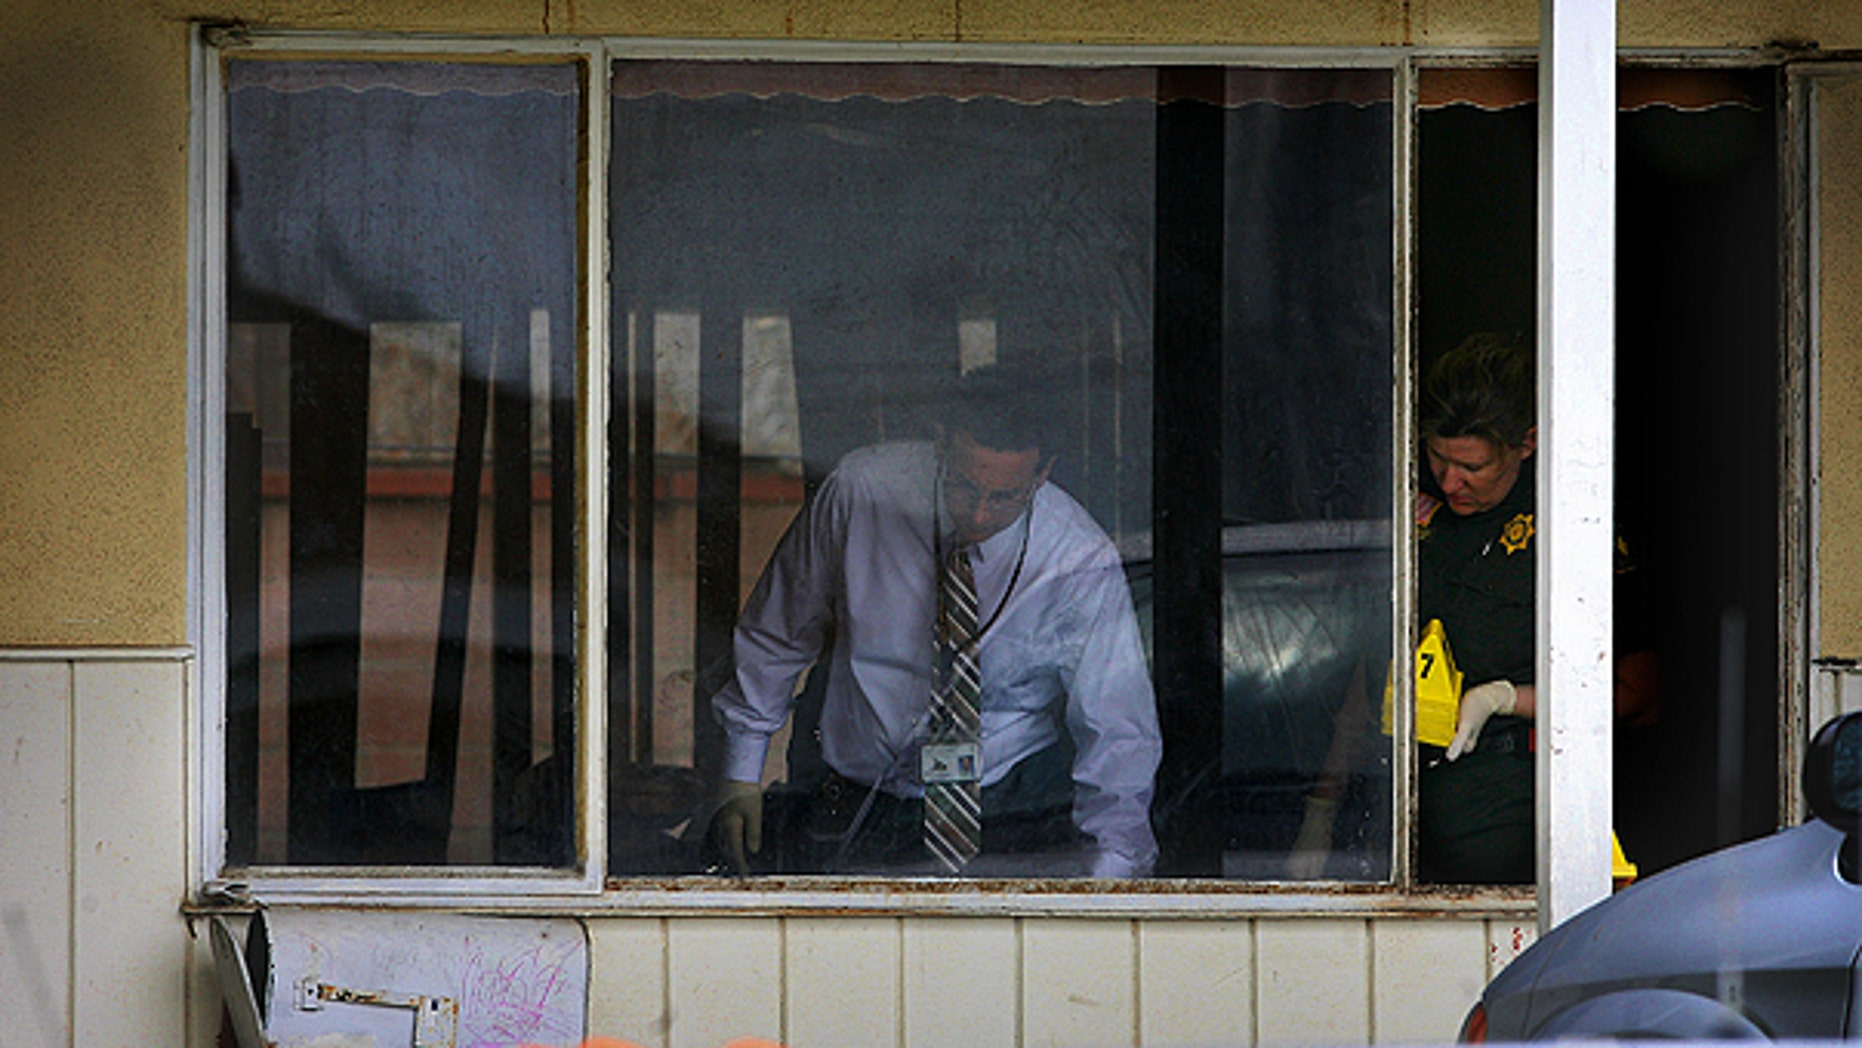 March 23: San Bernardino Sheriff's investigators and other personnel gather evidence at the scene where there were multiple stabbings in San Bernardino, Calif.